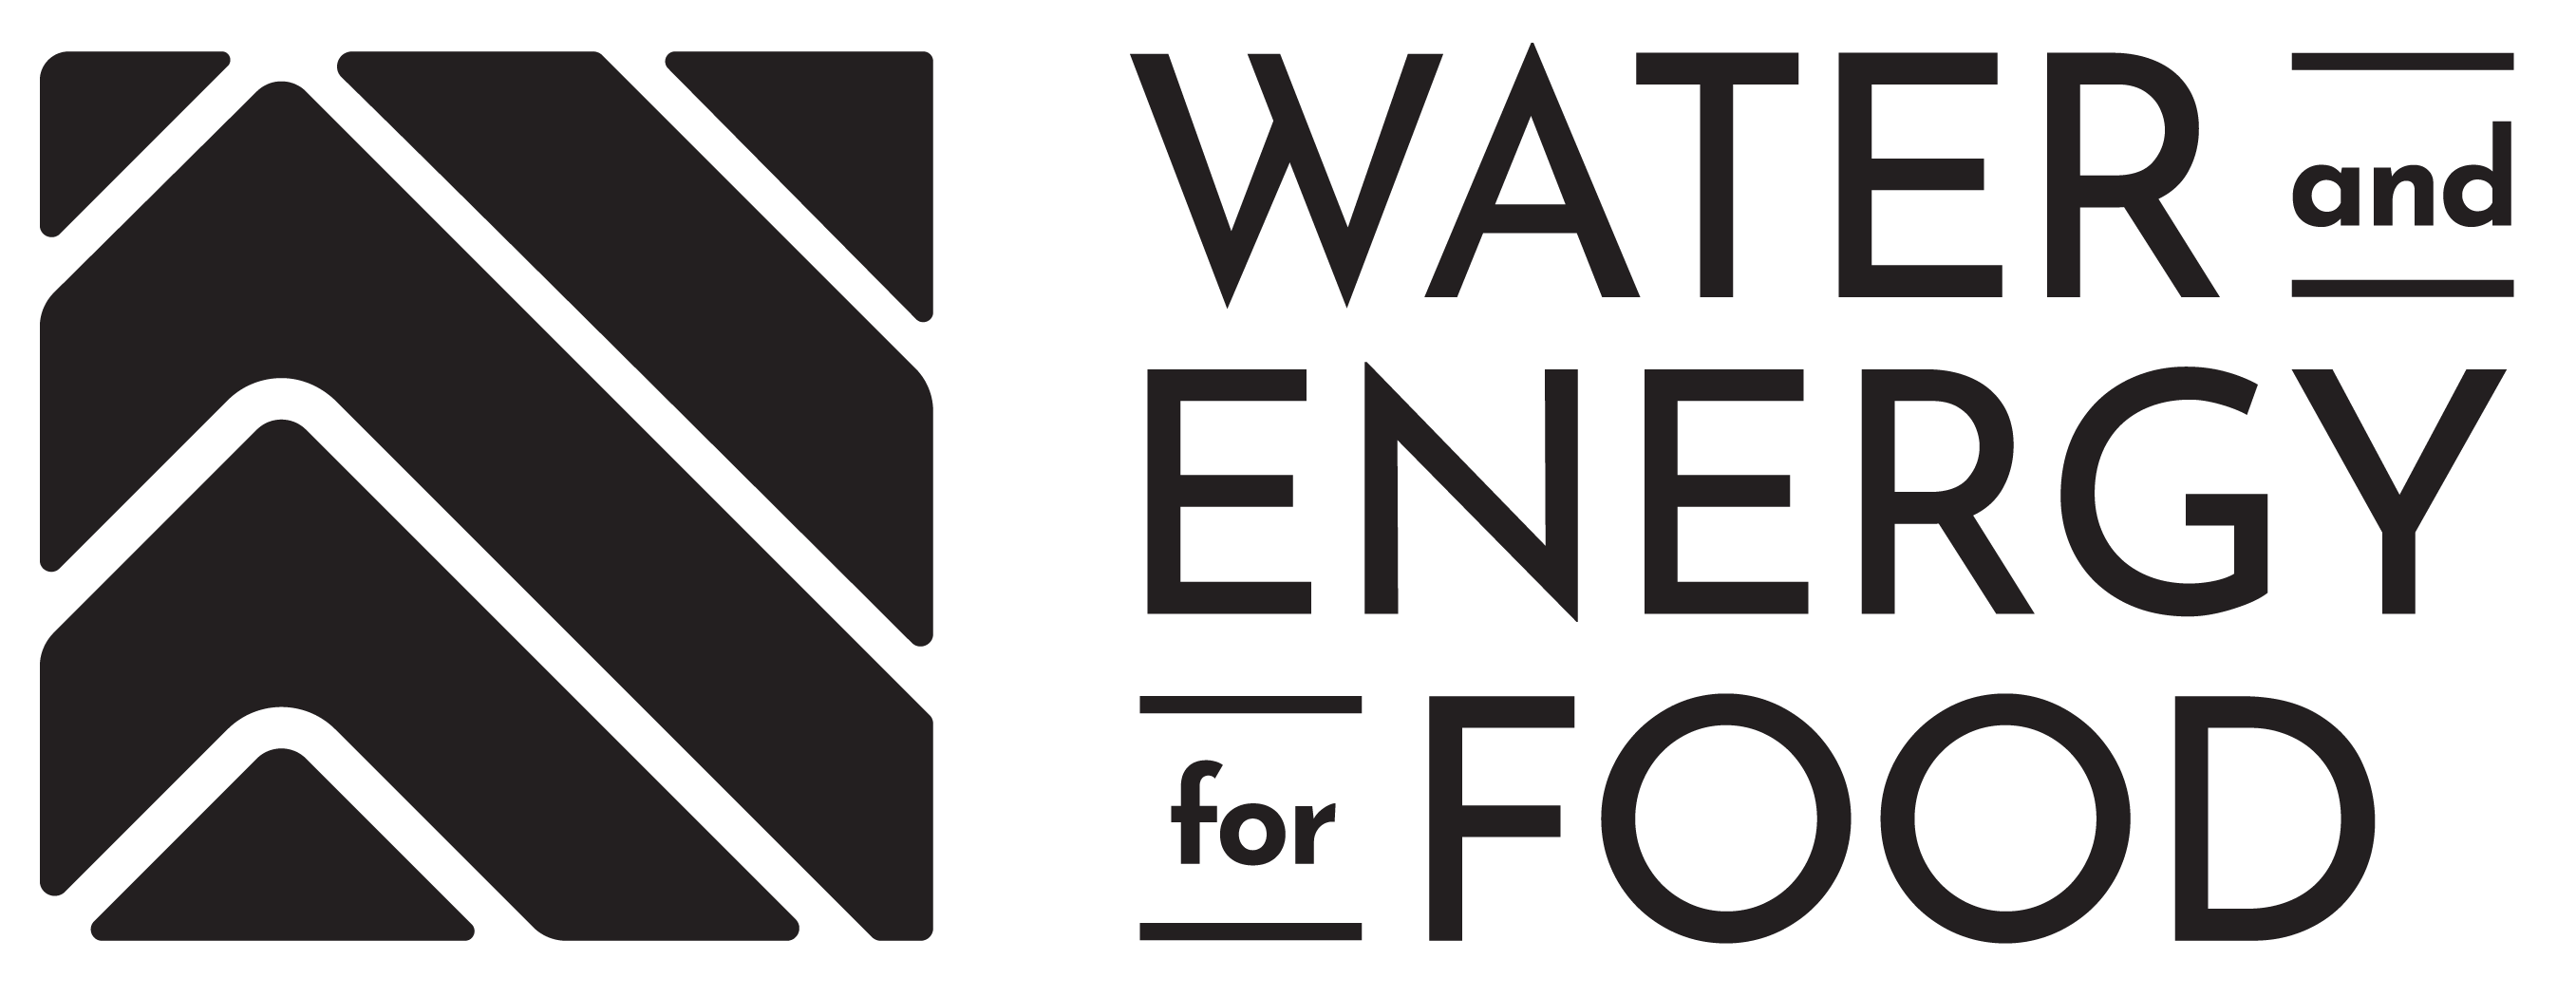 black version of the Water and Energy for Food logo